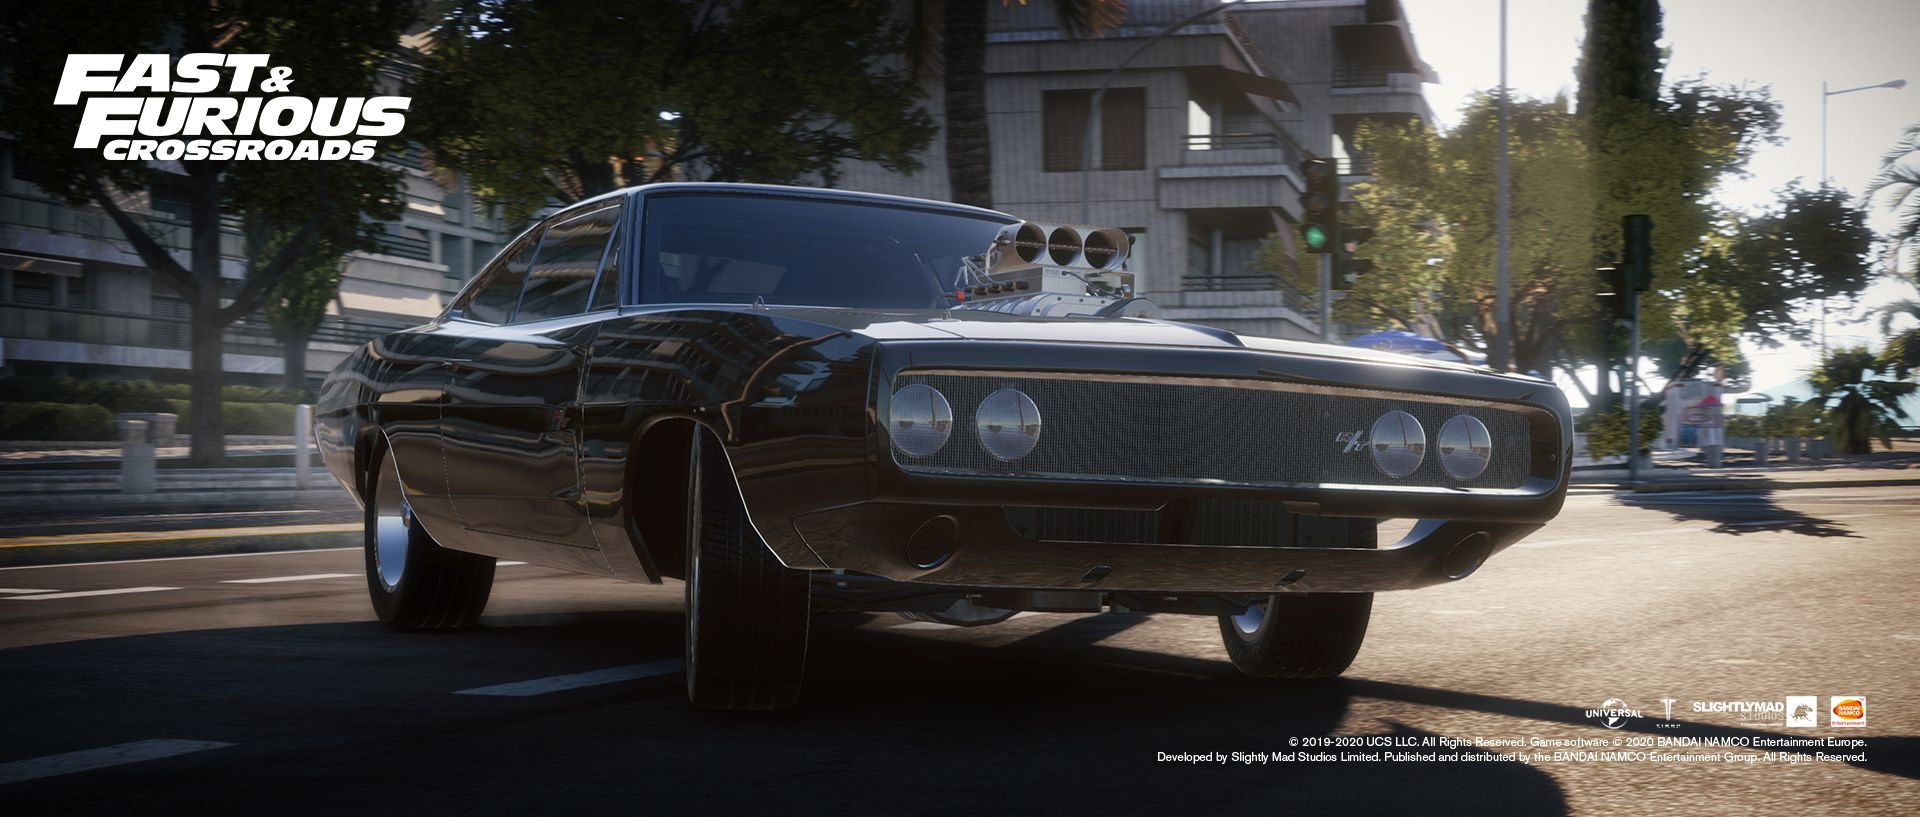 Fast & Furious Crossroads out in August, check out the new gameplay trailer